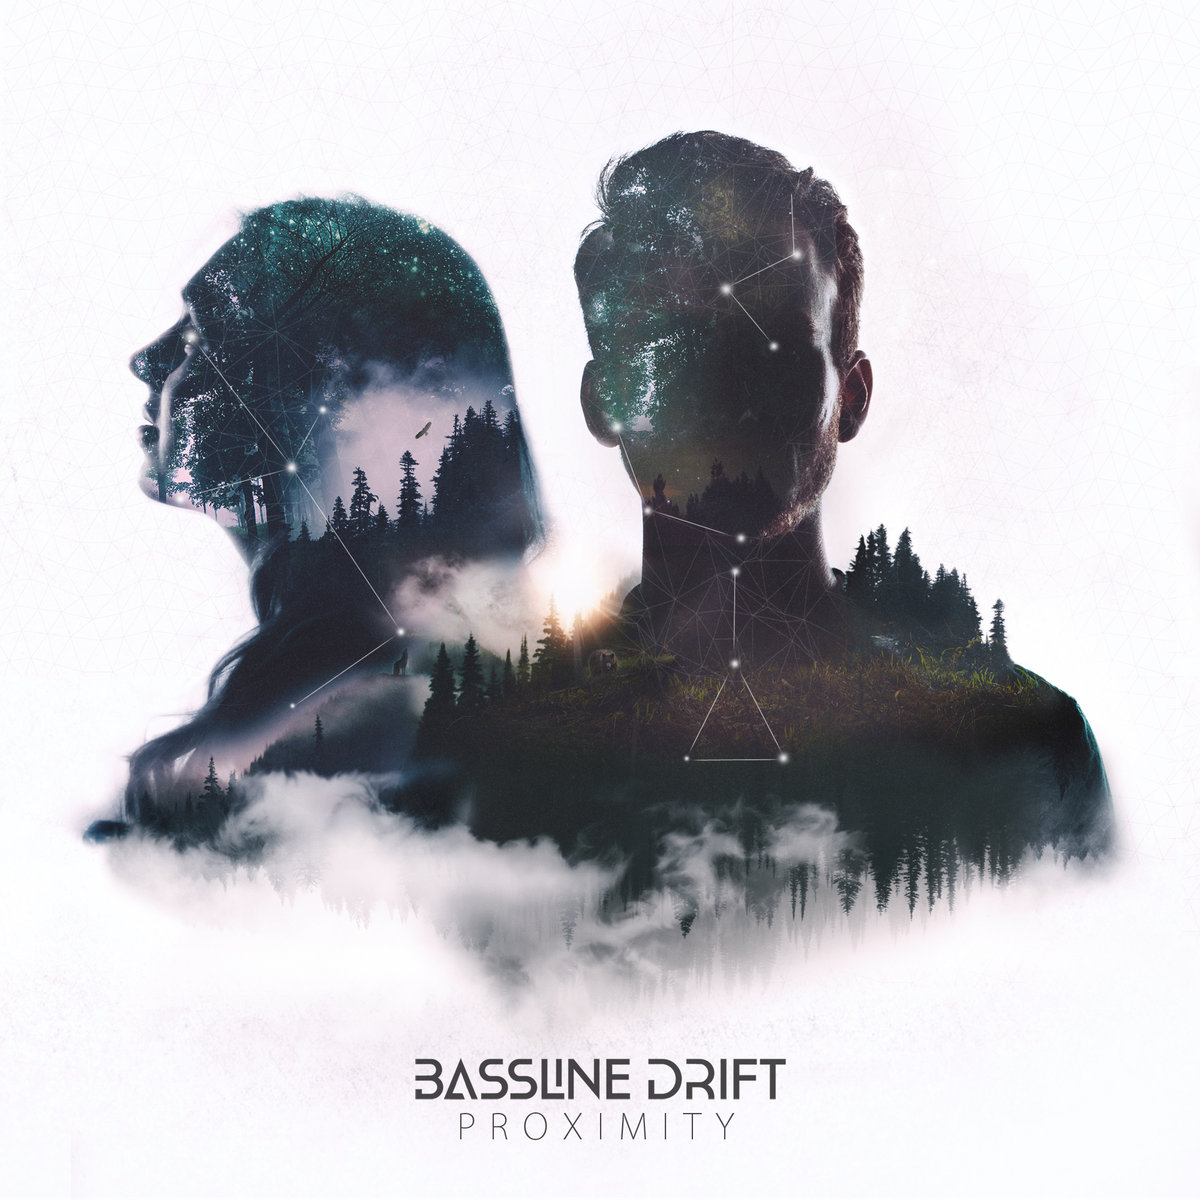 Bassline Drift - Proximity (artwork)